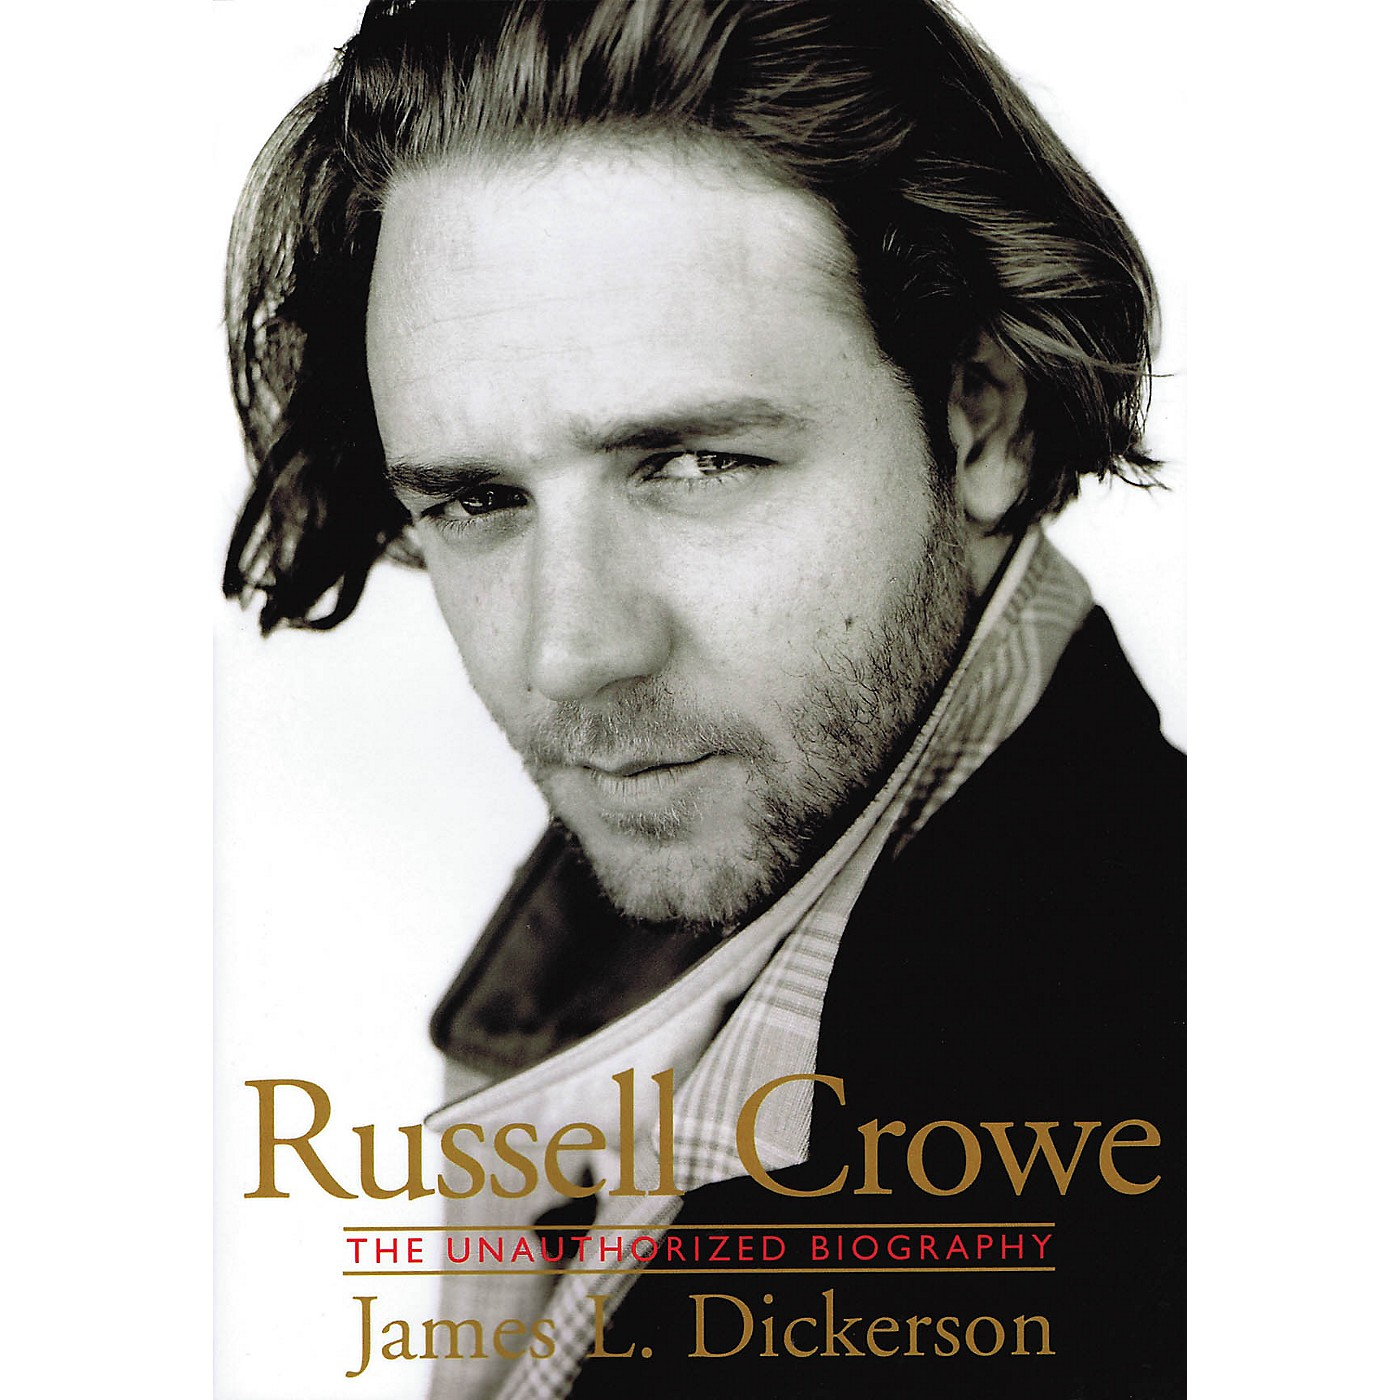 Schirmer Trade Russell Crowe (The Unauthorized Biography) Omnibus Press Series Softcover thumbnail